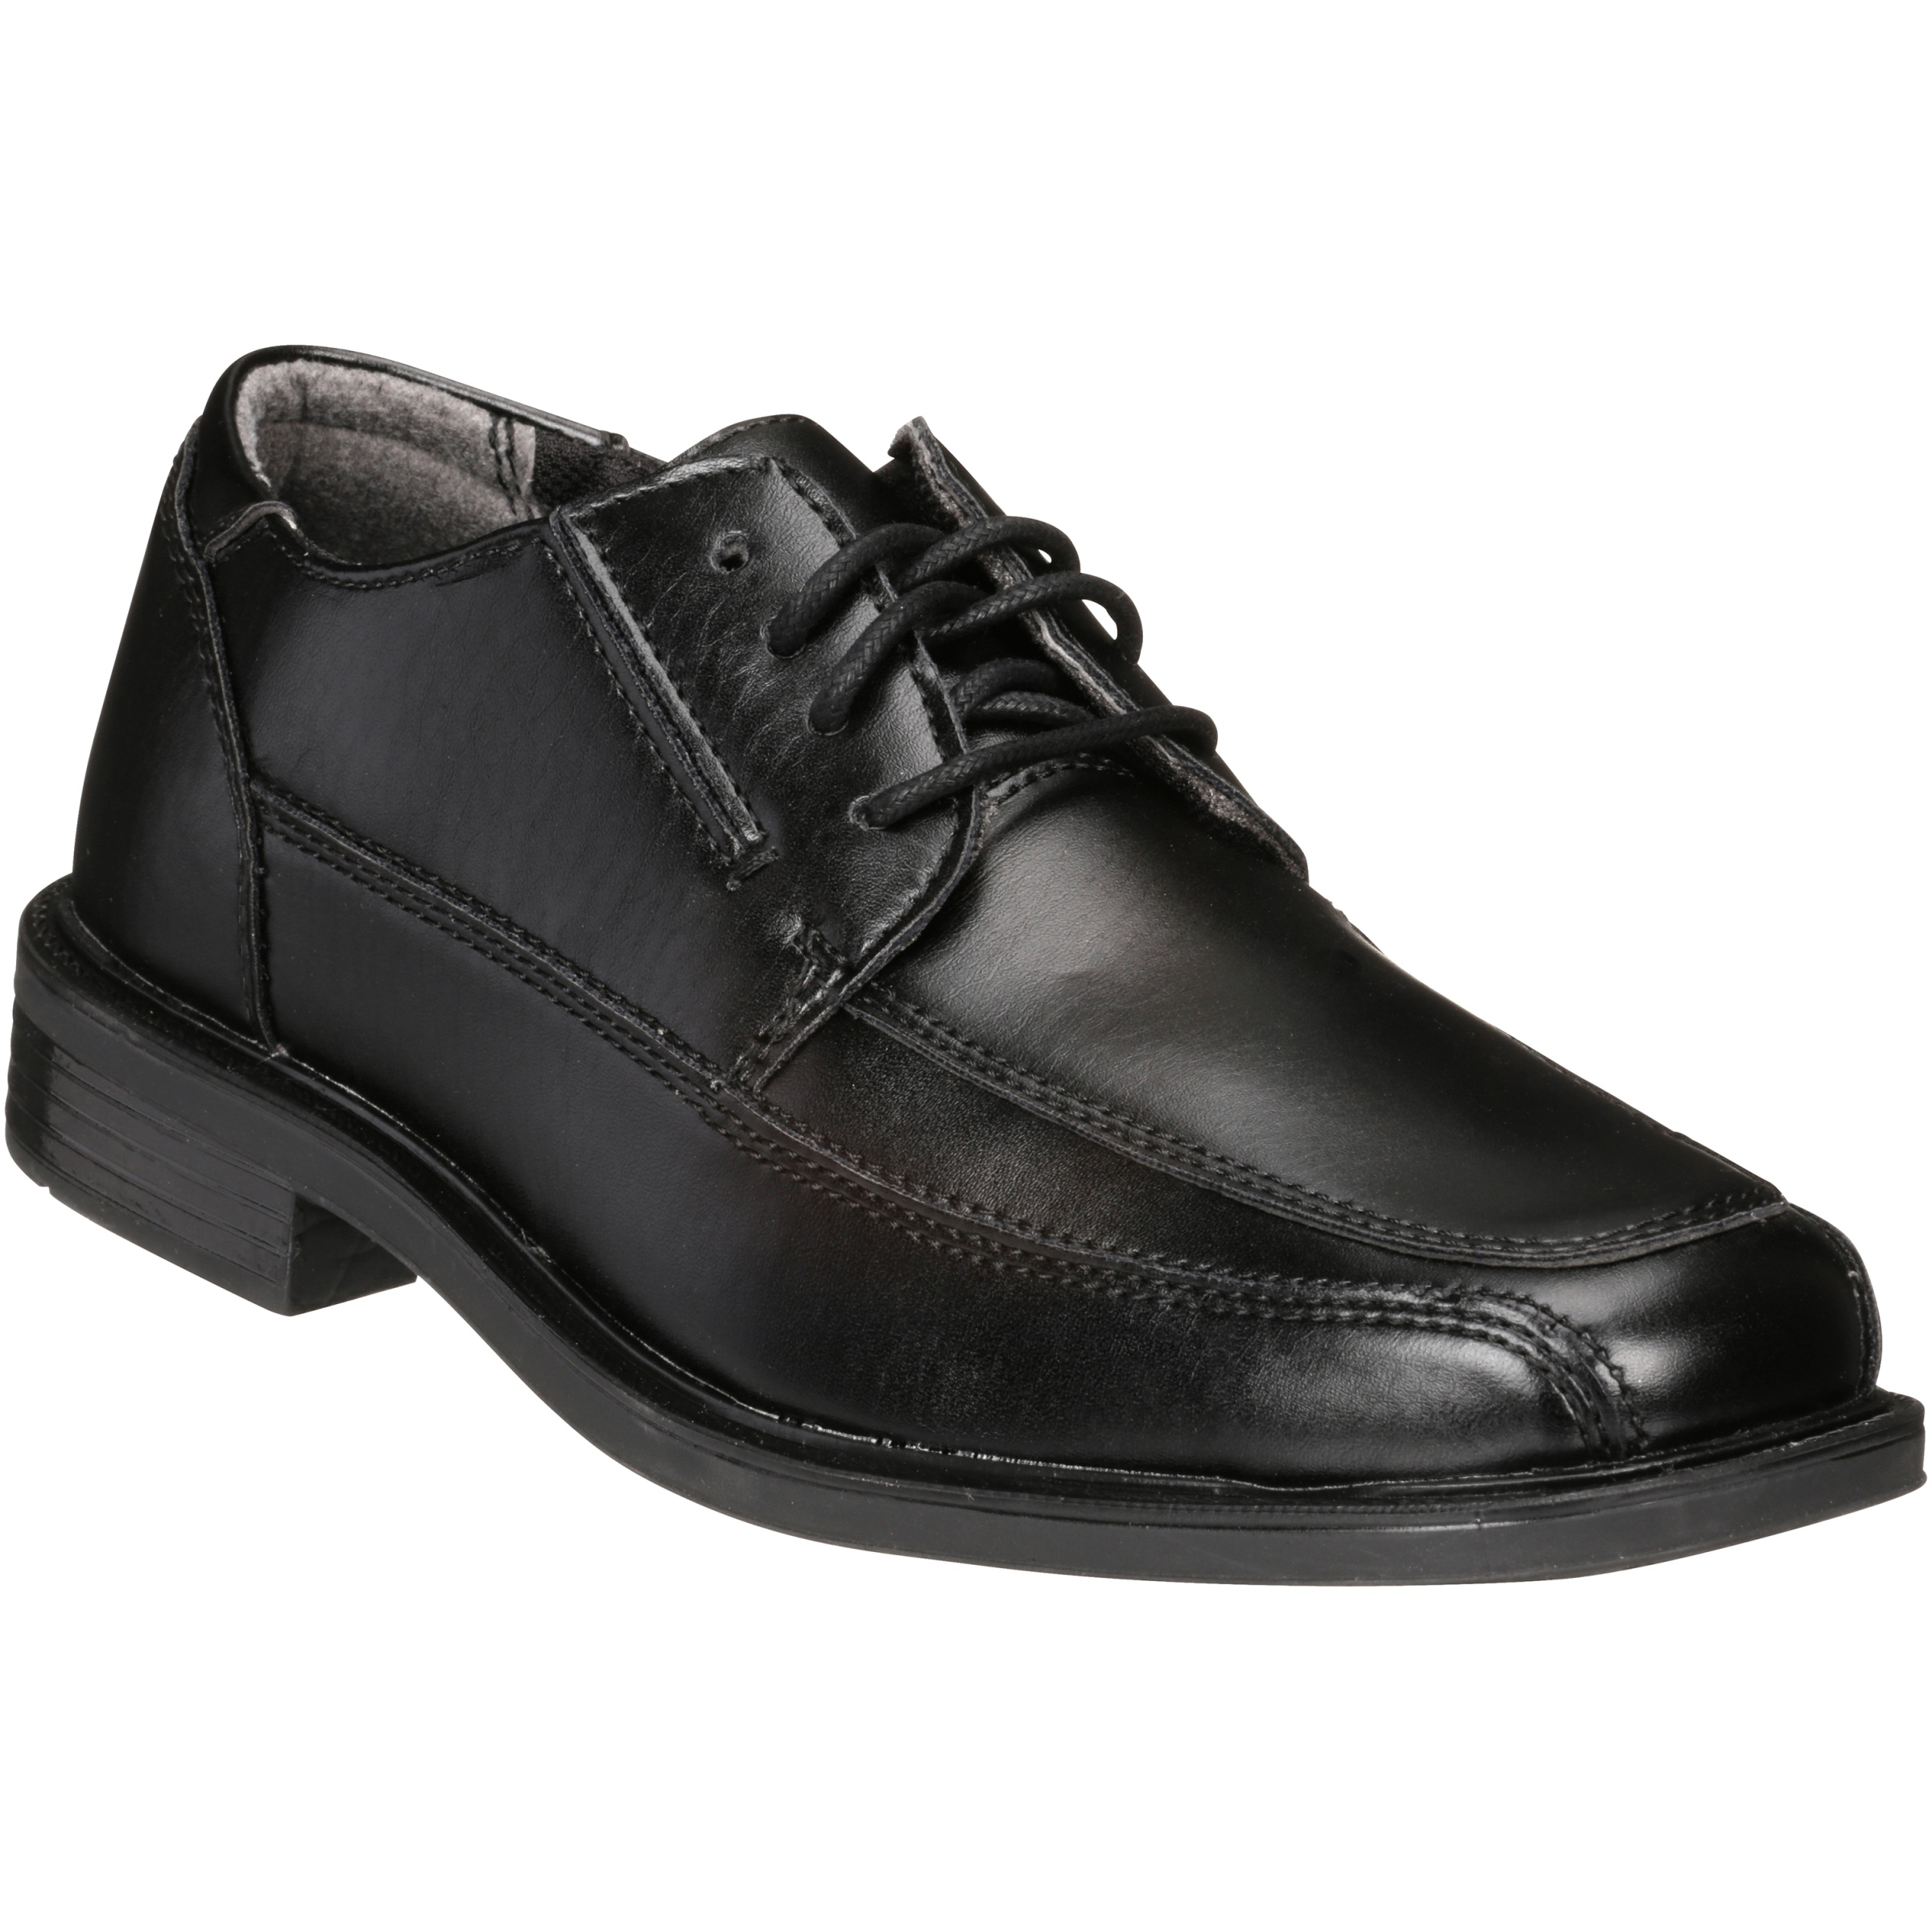 George Men's Faraday Oxford Dress Shoe